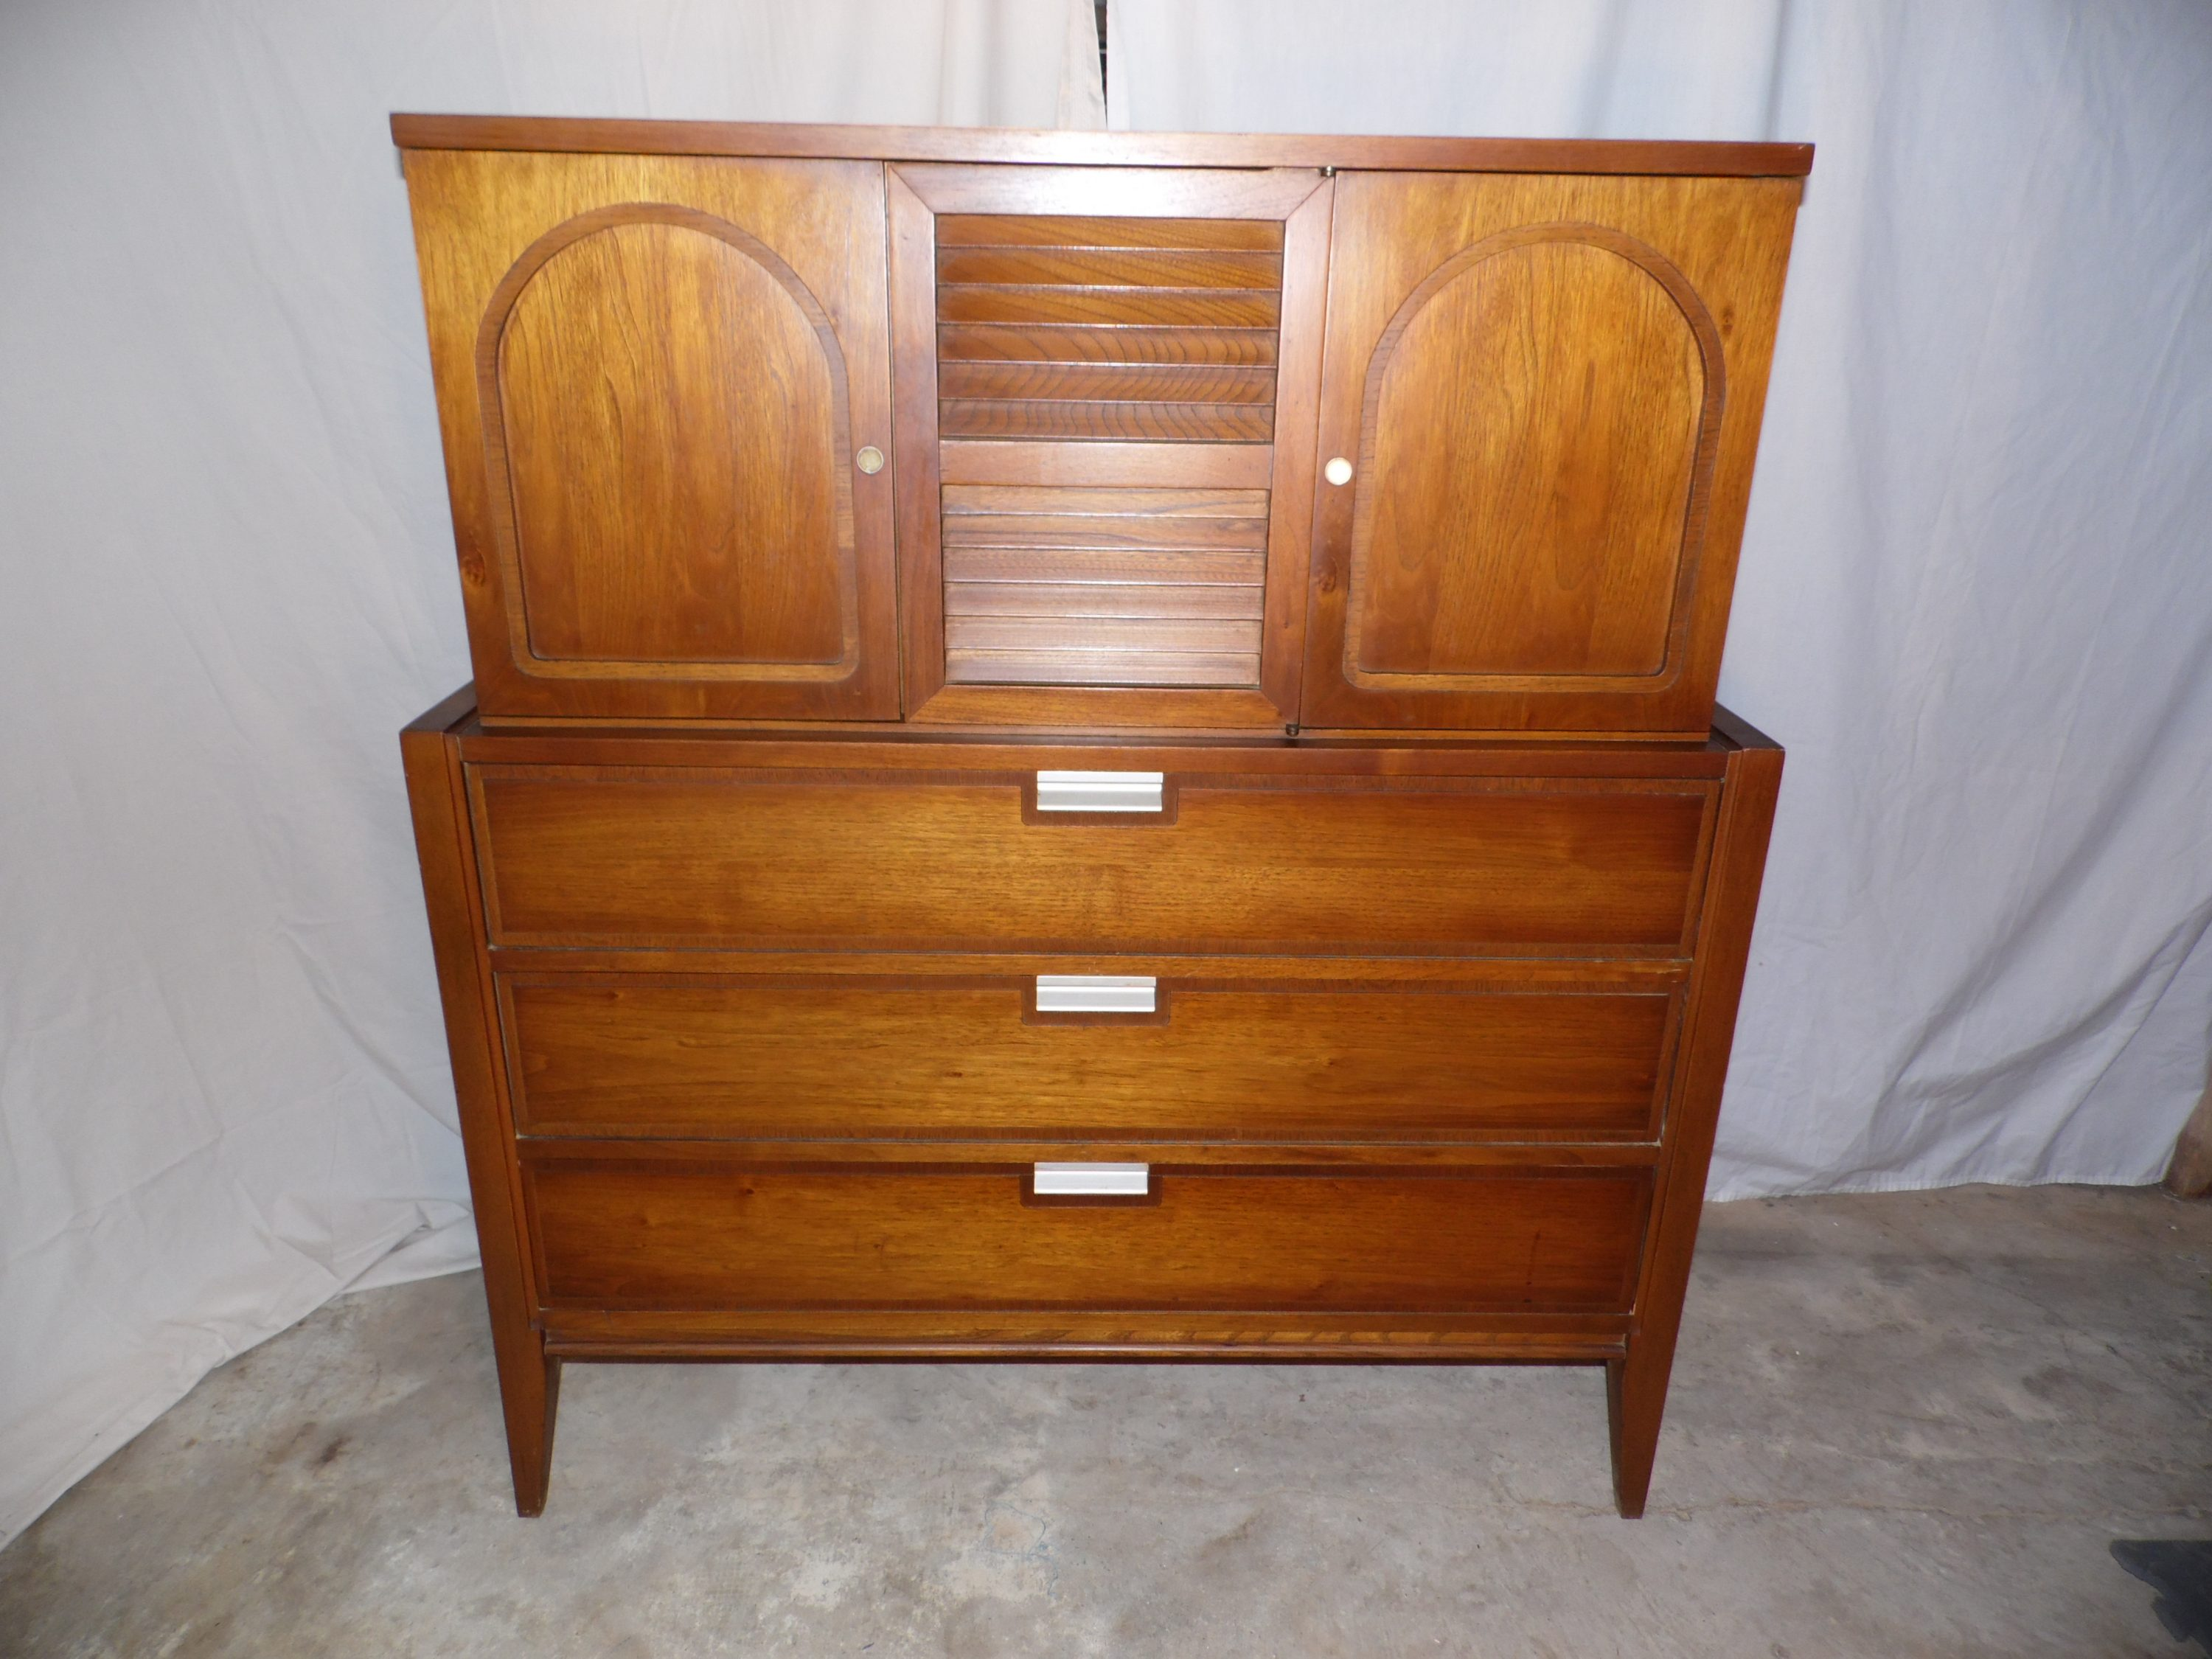 Vintage Mid Century Modern Basic Witz Dresser Gentleman's Chest of Drawers 1960s